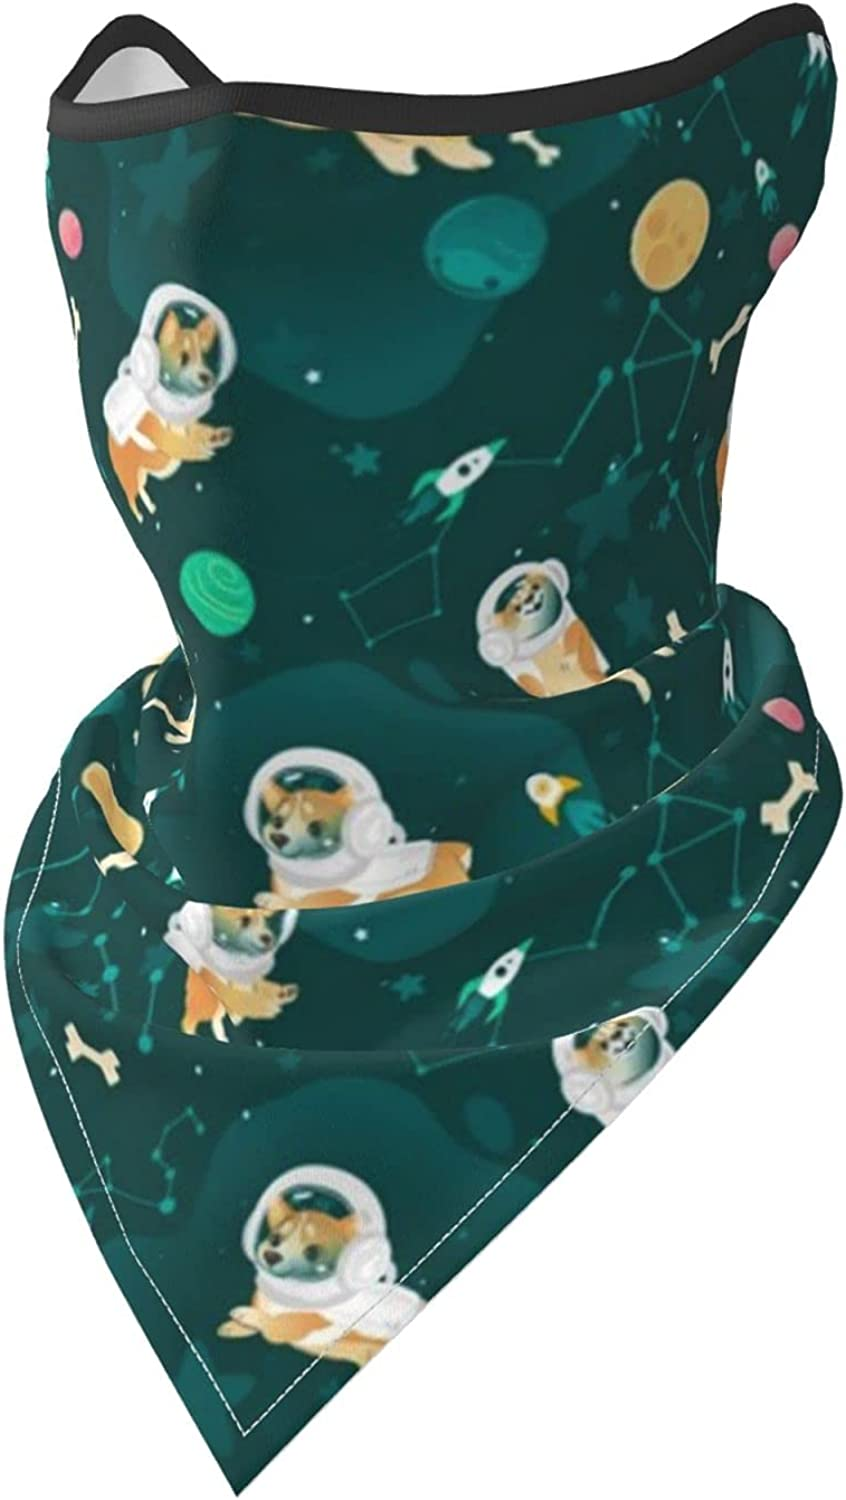 Welsh Corgi Dogs Flying in Space Breathable Bandana Face Mask Neck Gaiter Windproof Sports Mask Scarf Headwear for Men Women Outdoor Hiking Cycling Running Motorcycling